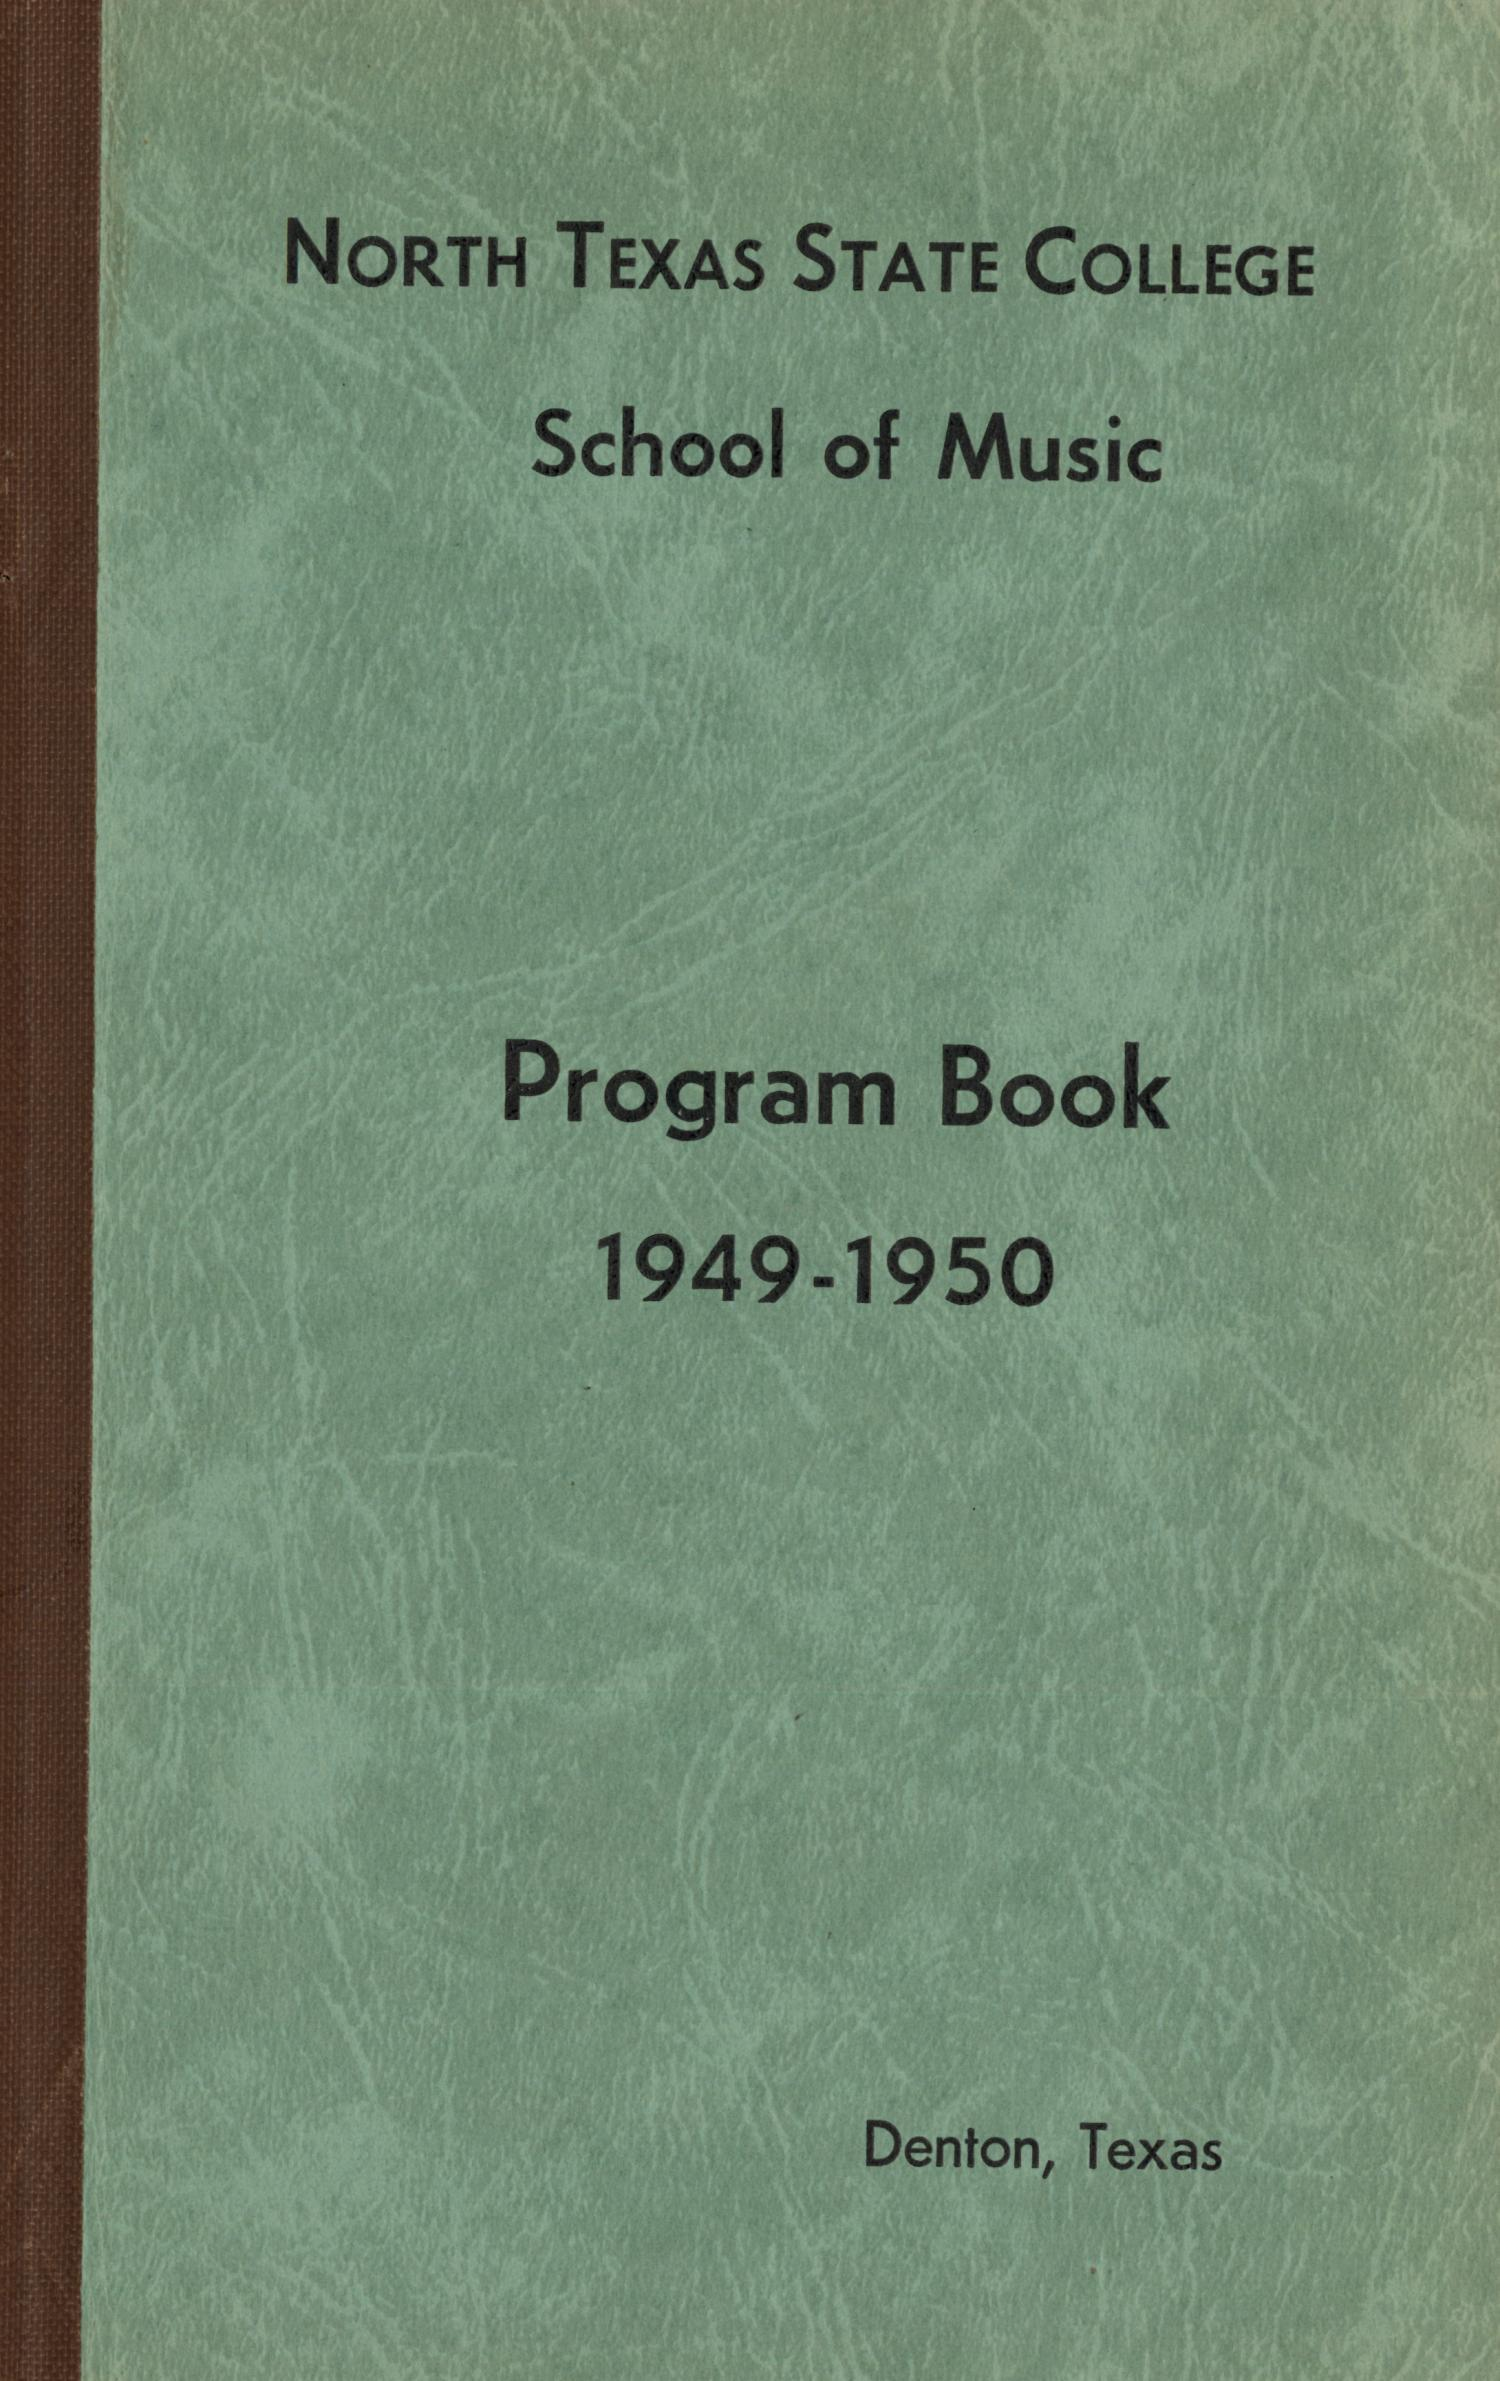 School of Music Program Book 1949-1950                                                                                                      Front Cover